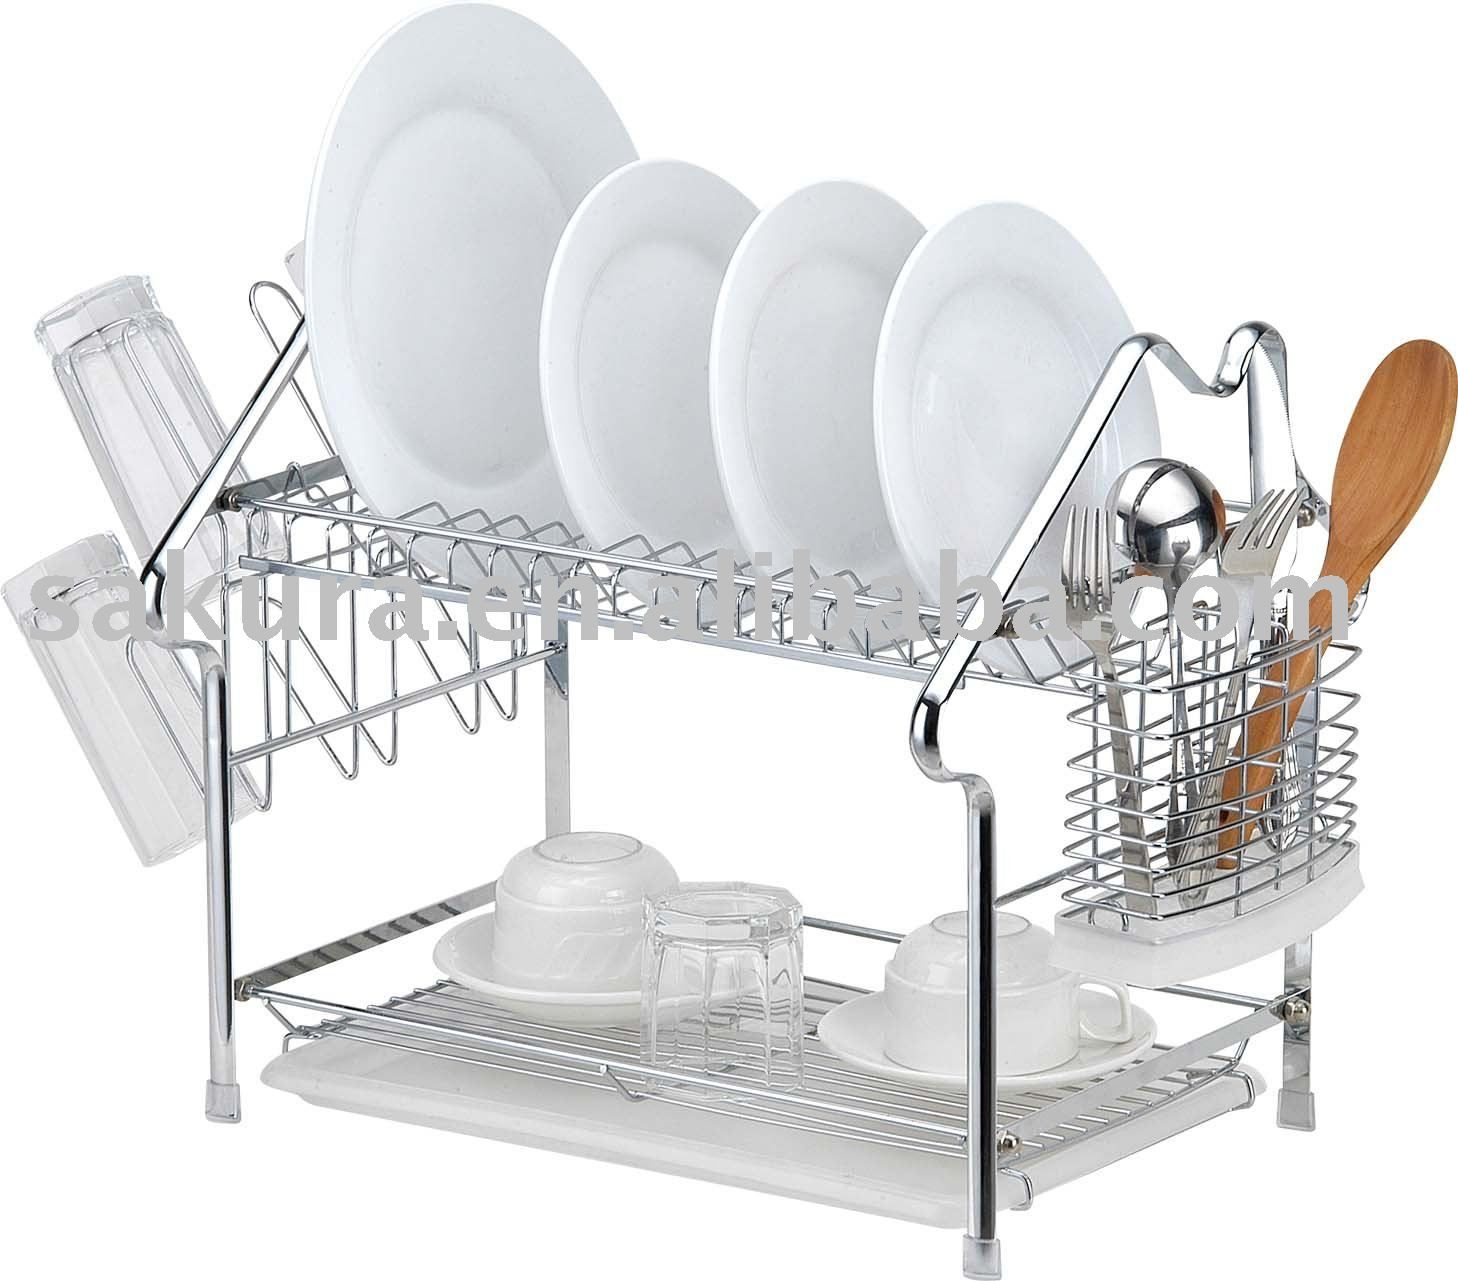 House Shape Metal Dish Rack,Plate Rack,Dish Drainer,Kitchen Accessory Photo,